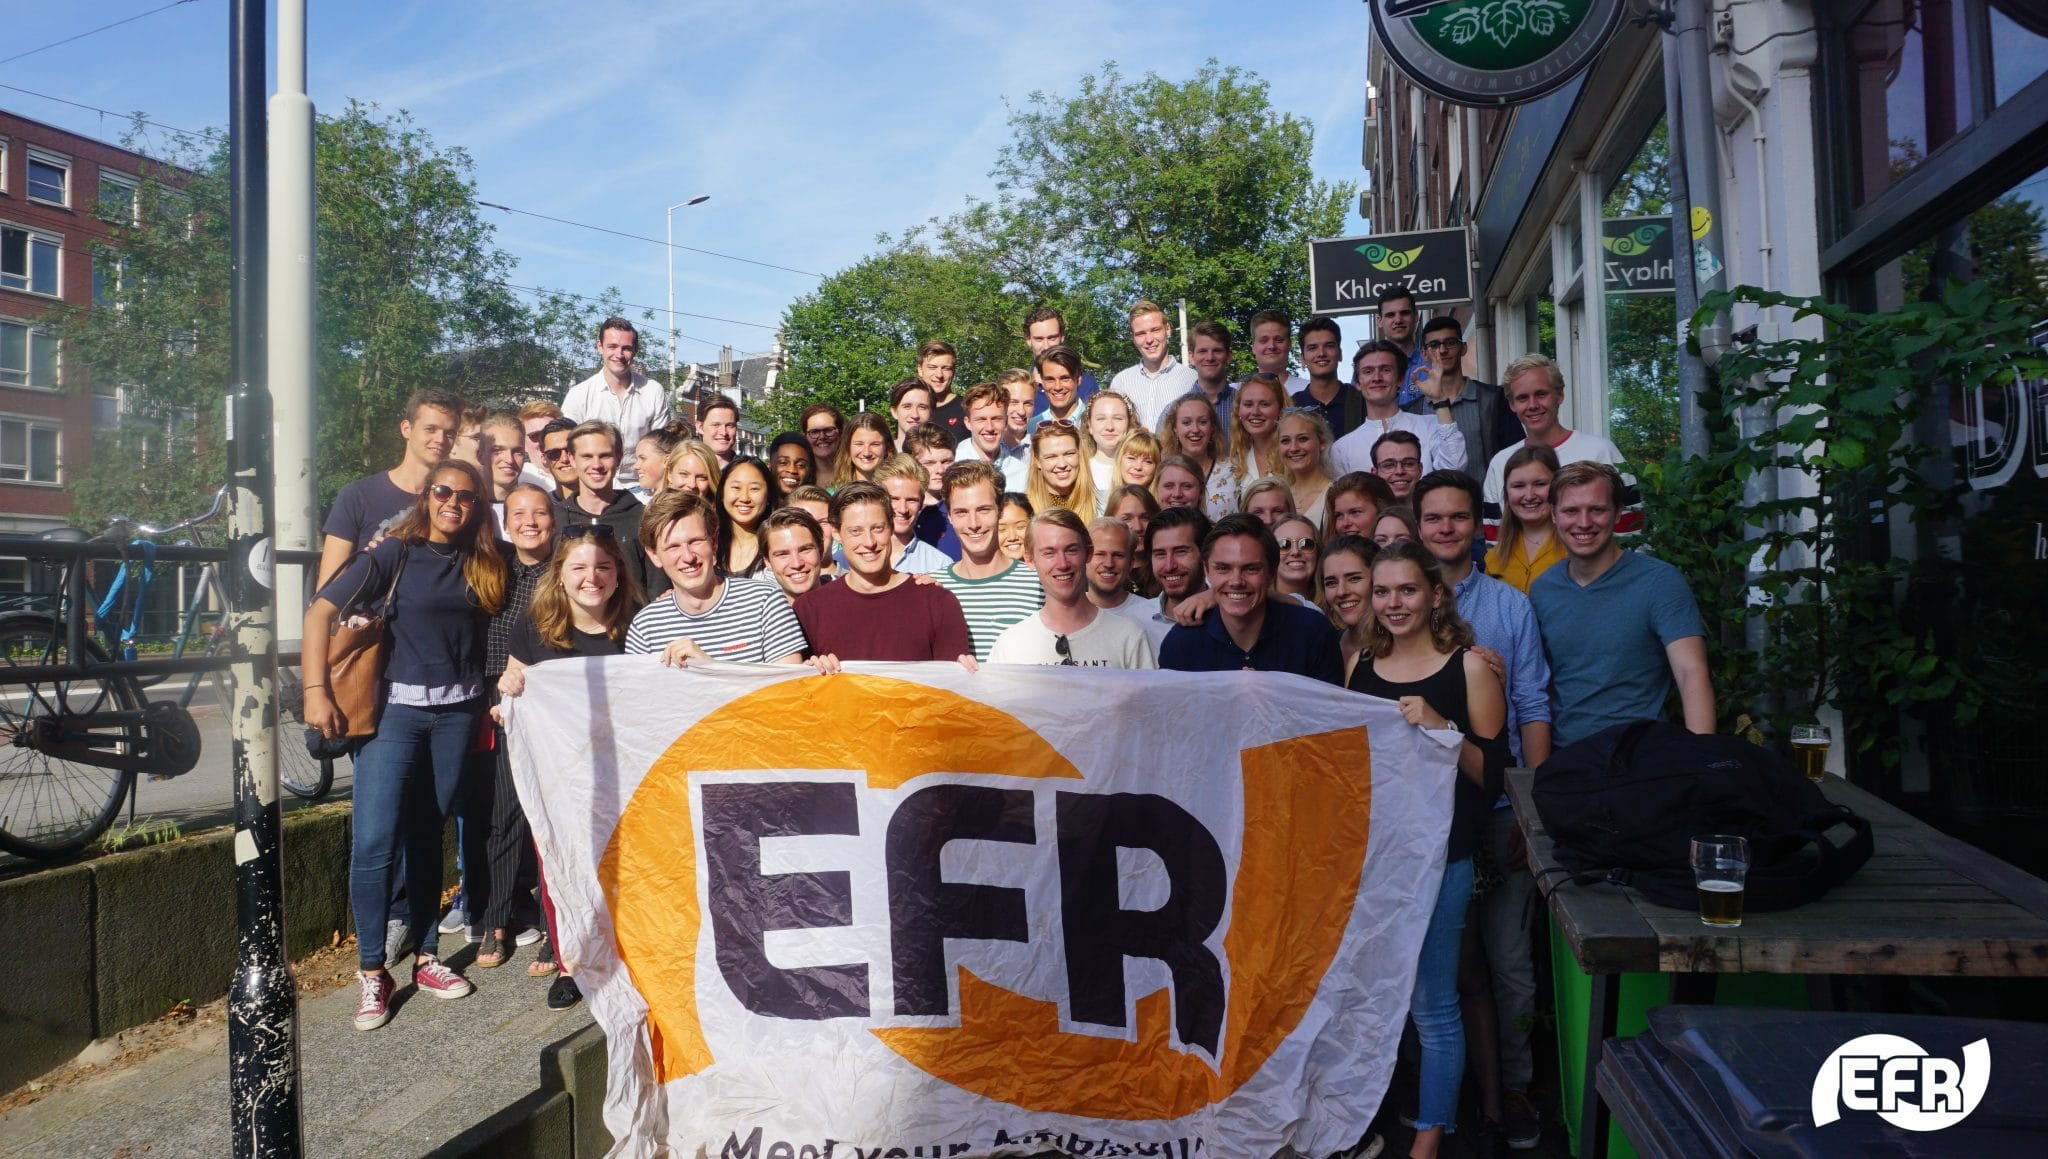 EFR-featured_image